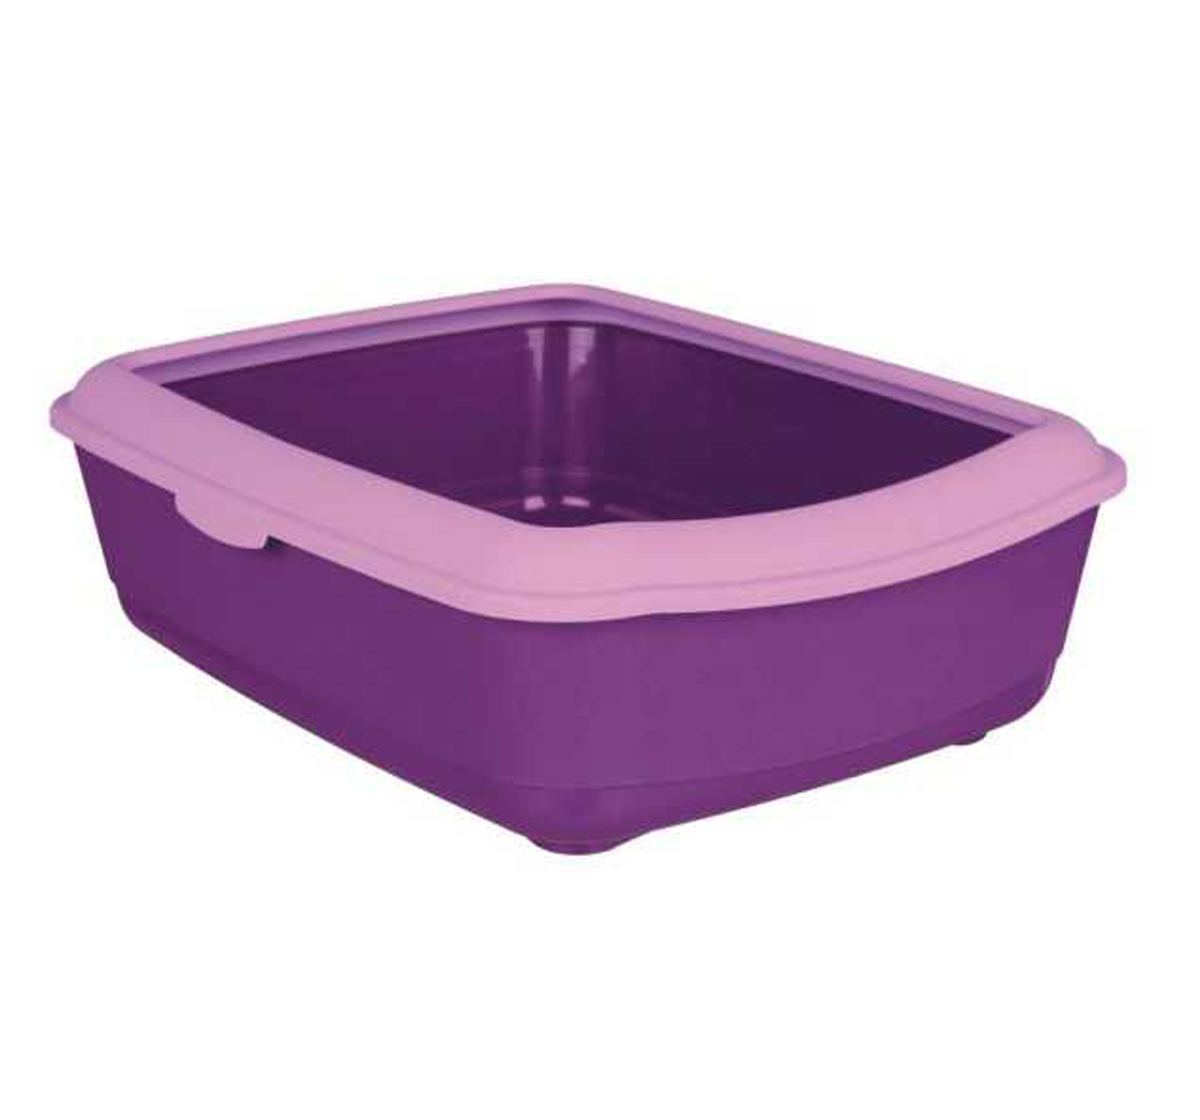 Pour enough litter into a clean box, covering the bottom to a depth of at least 3 inchesEach day remove your cat's business (#1 and #2) with a sifting litter scoop.